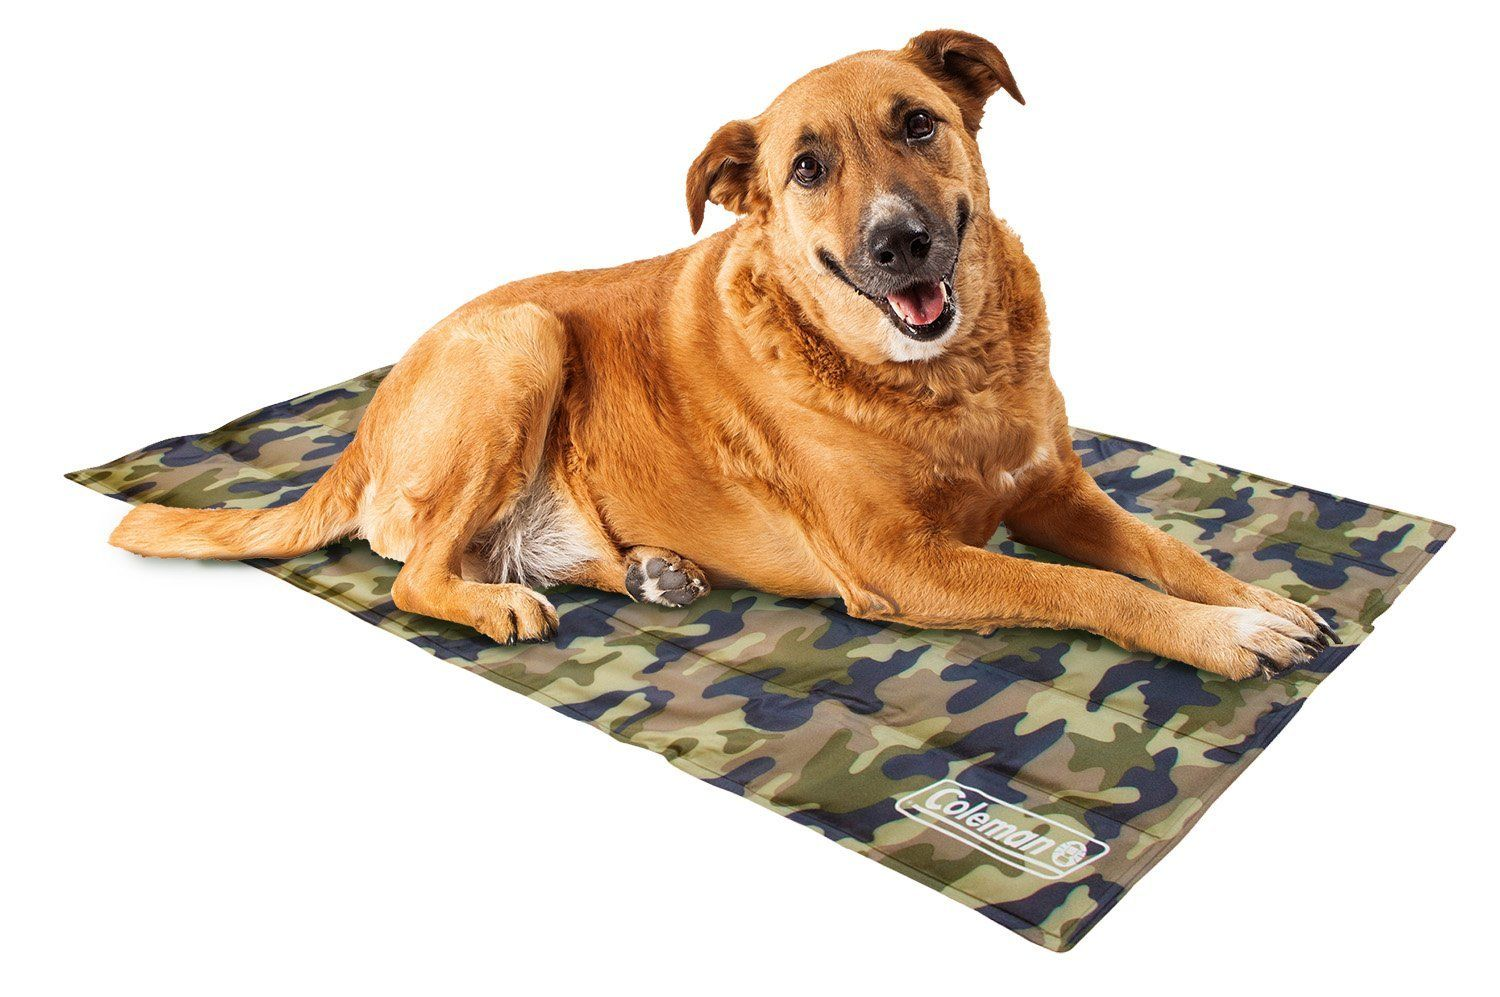 Coleman Comfort Cooling Gel Pet Pad Mat In Large 20 X36 For Large Pets Green Camo See This Great Product This Is A Pet Pads Pet Cooling Mat Cool Pets